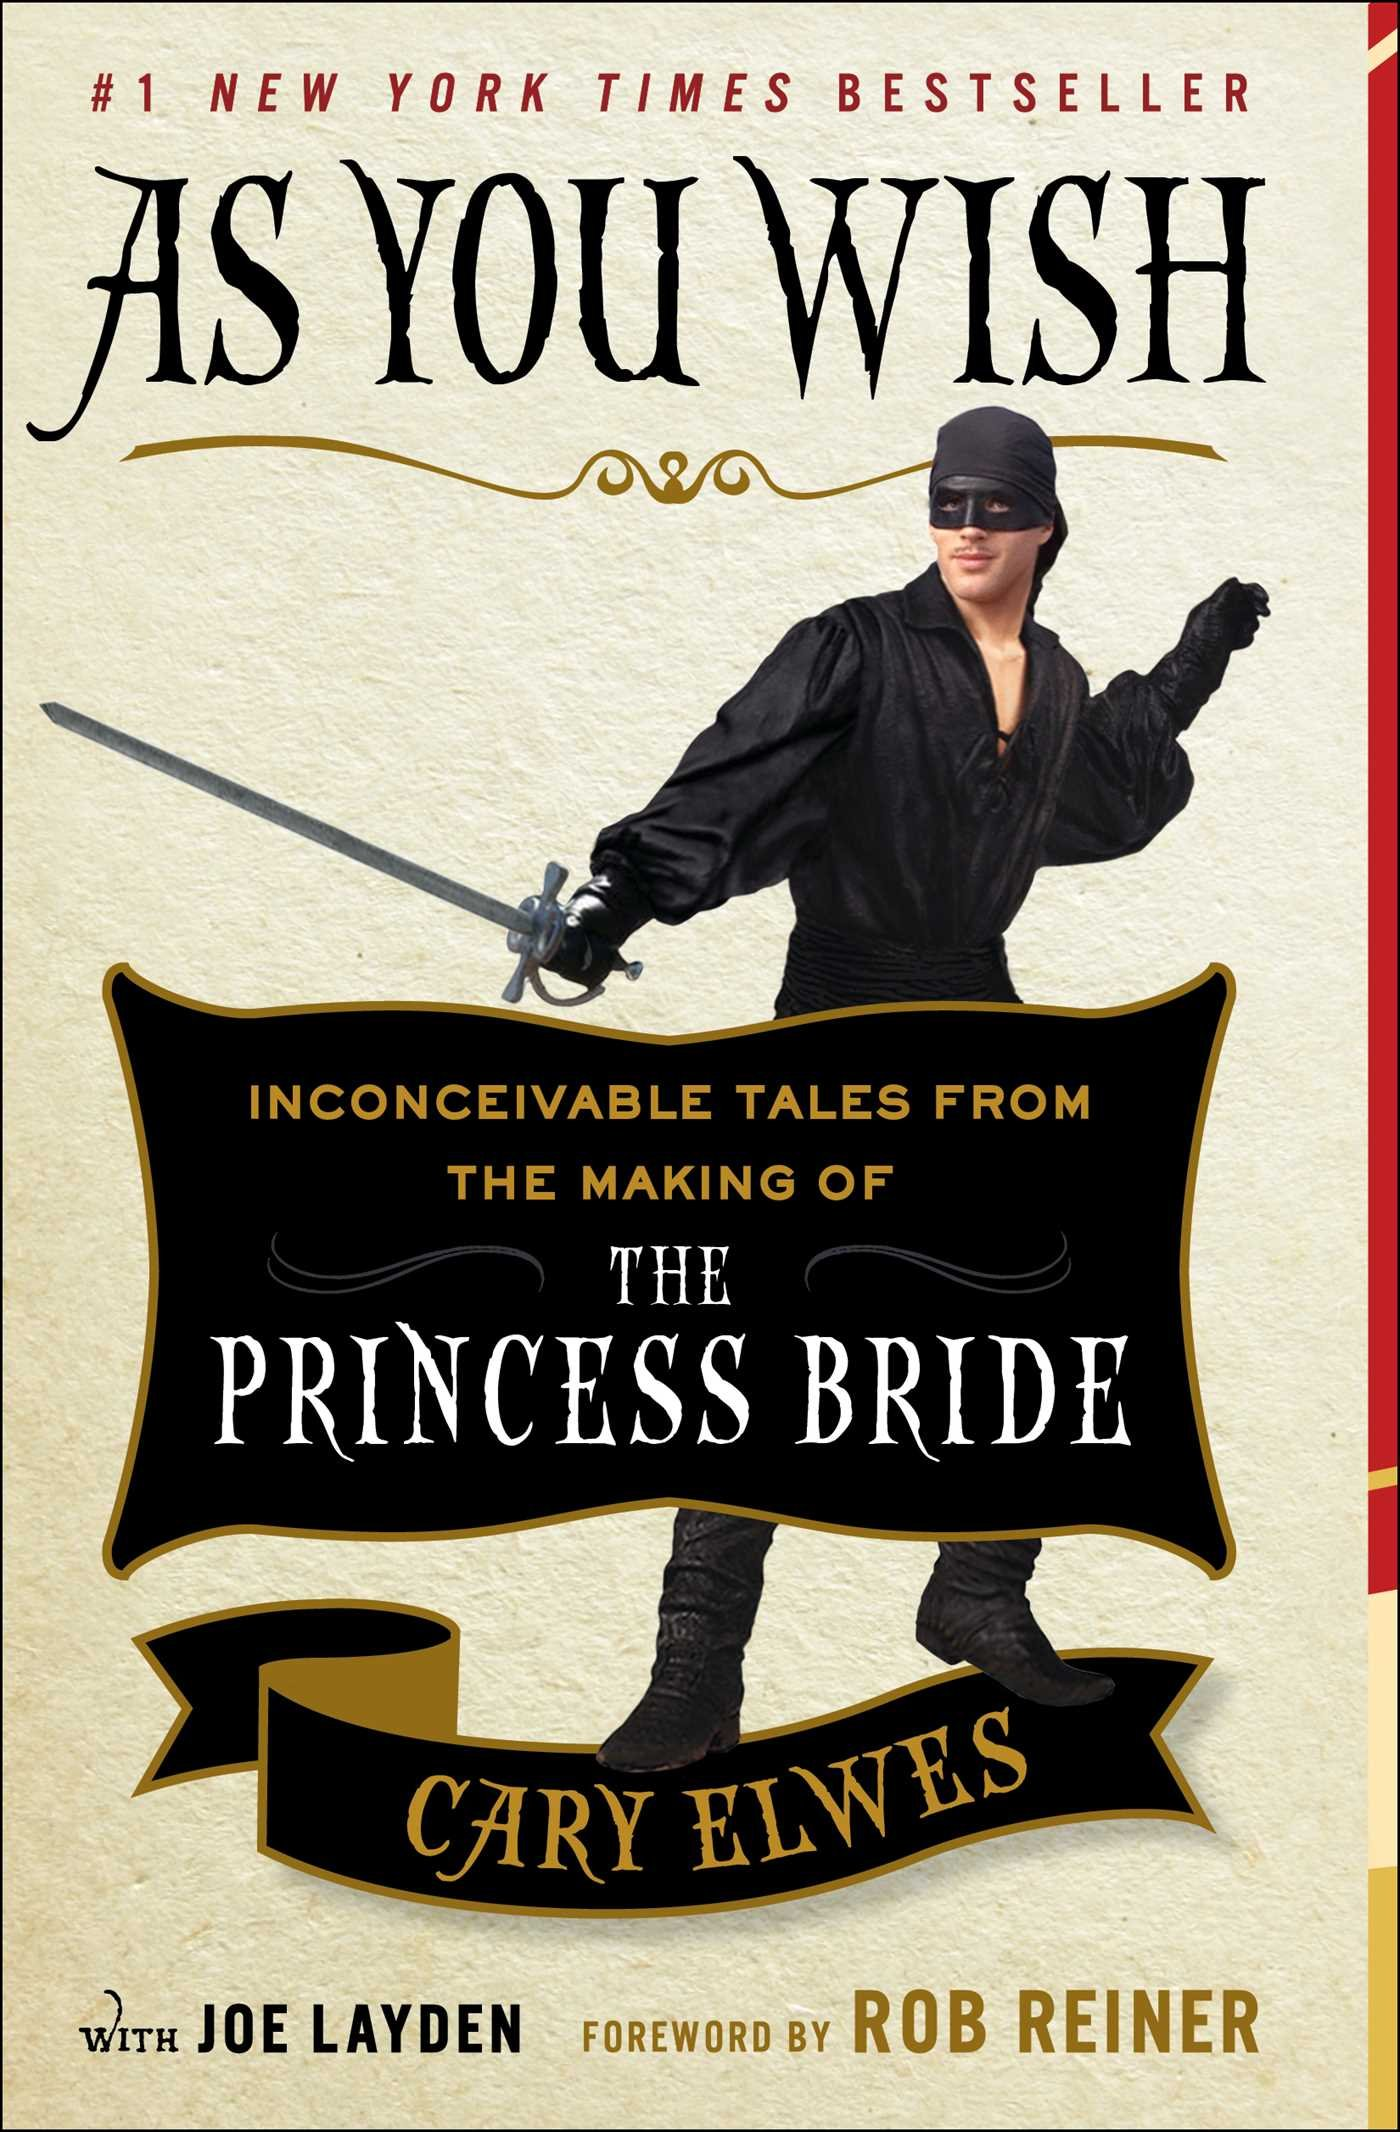 The Princess Bride - Cary Elwes - As You Wish   visit beautifulbooks.info for more...